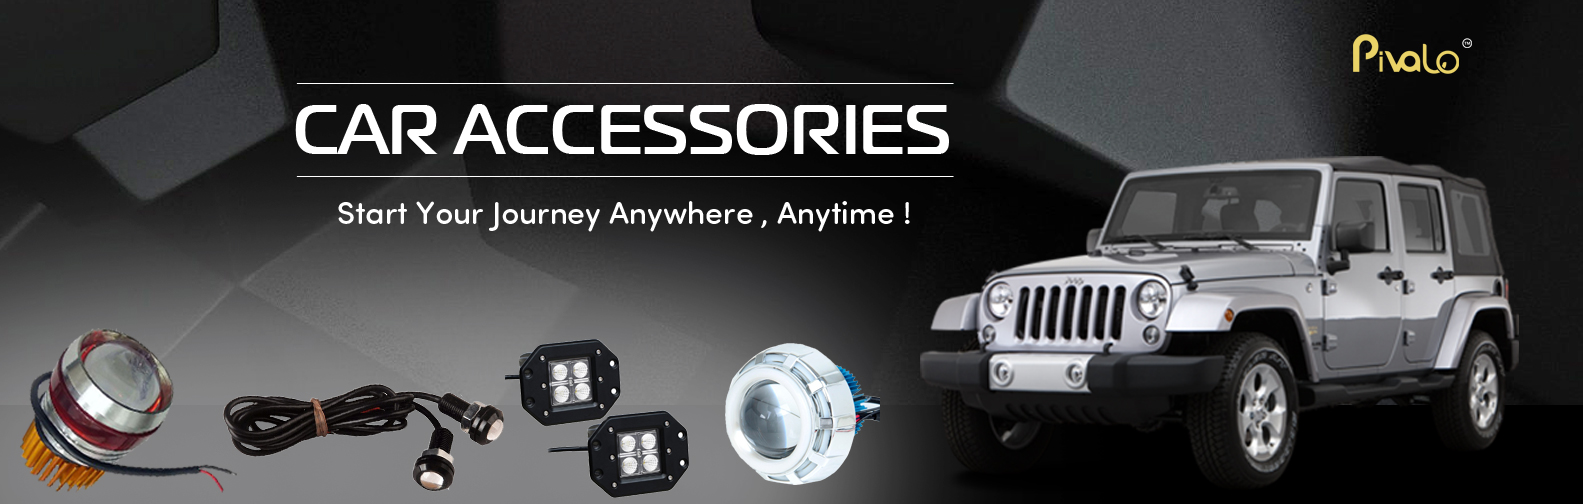 Car Accessories - Start Your Journey Anywhere, Anytime!